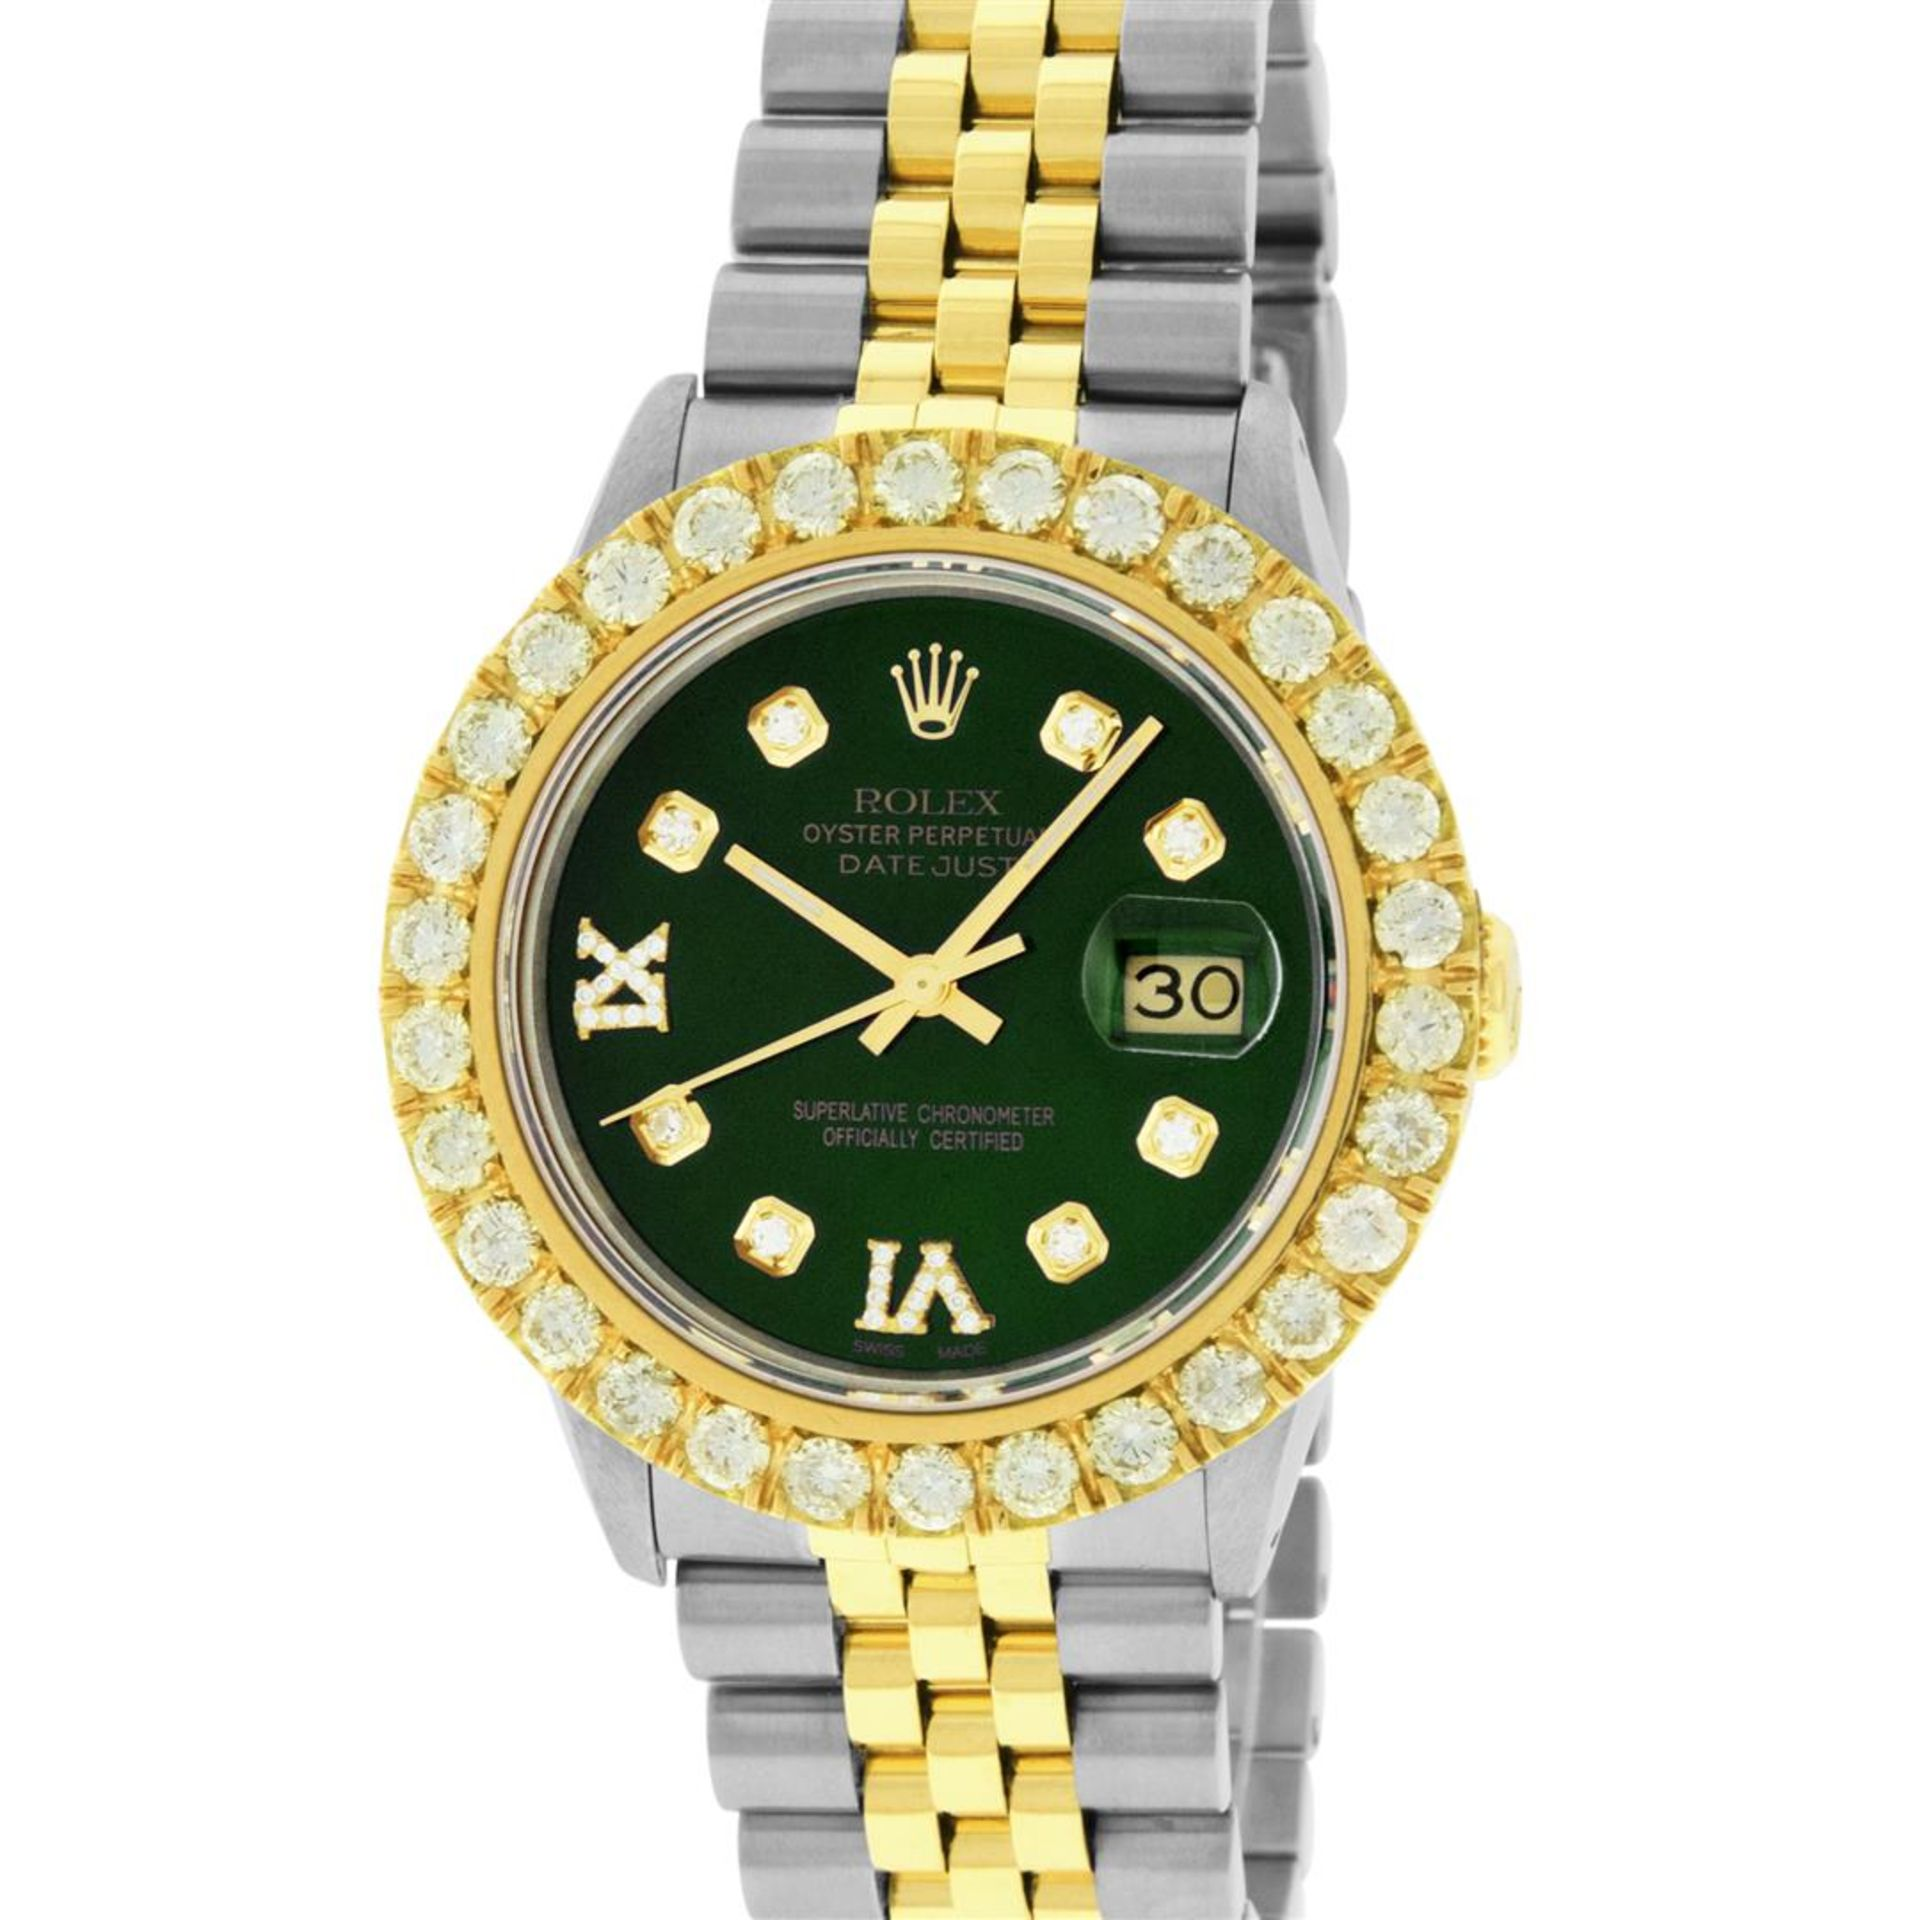 Rolex Mens 2 Tone Green VS 4 ctw Beadset Diamond Datejust Wristwatch with Rolex - Image 2 of 9